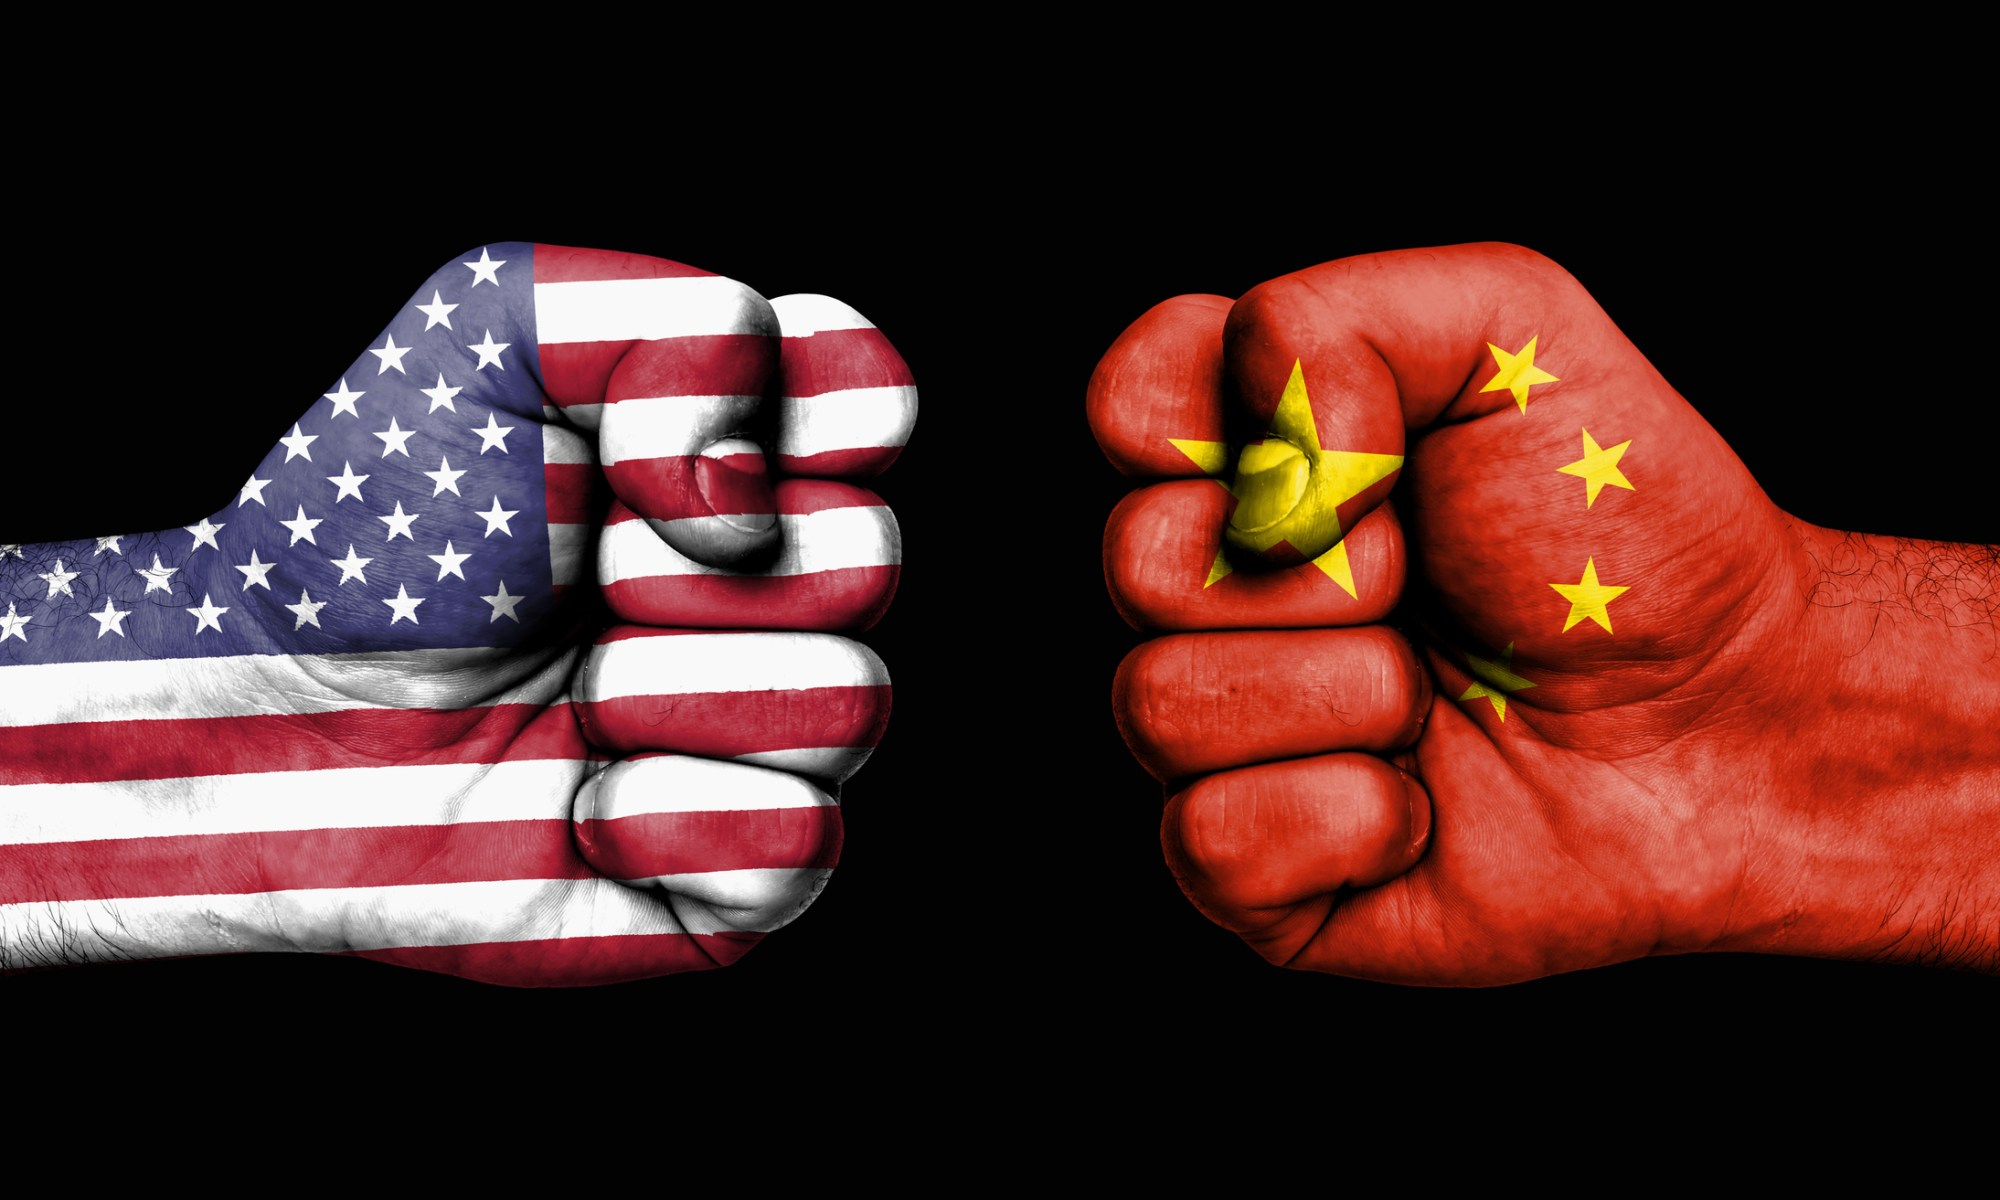 Two firsts displayed across from each other with U.S. and Chinese flags laid over them.